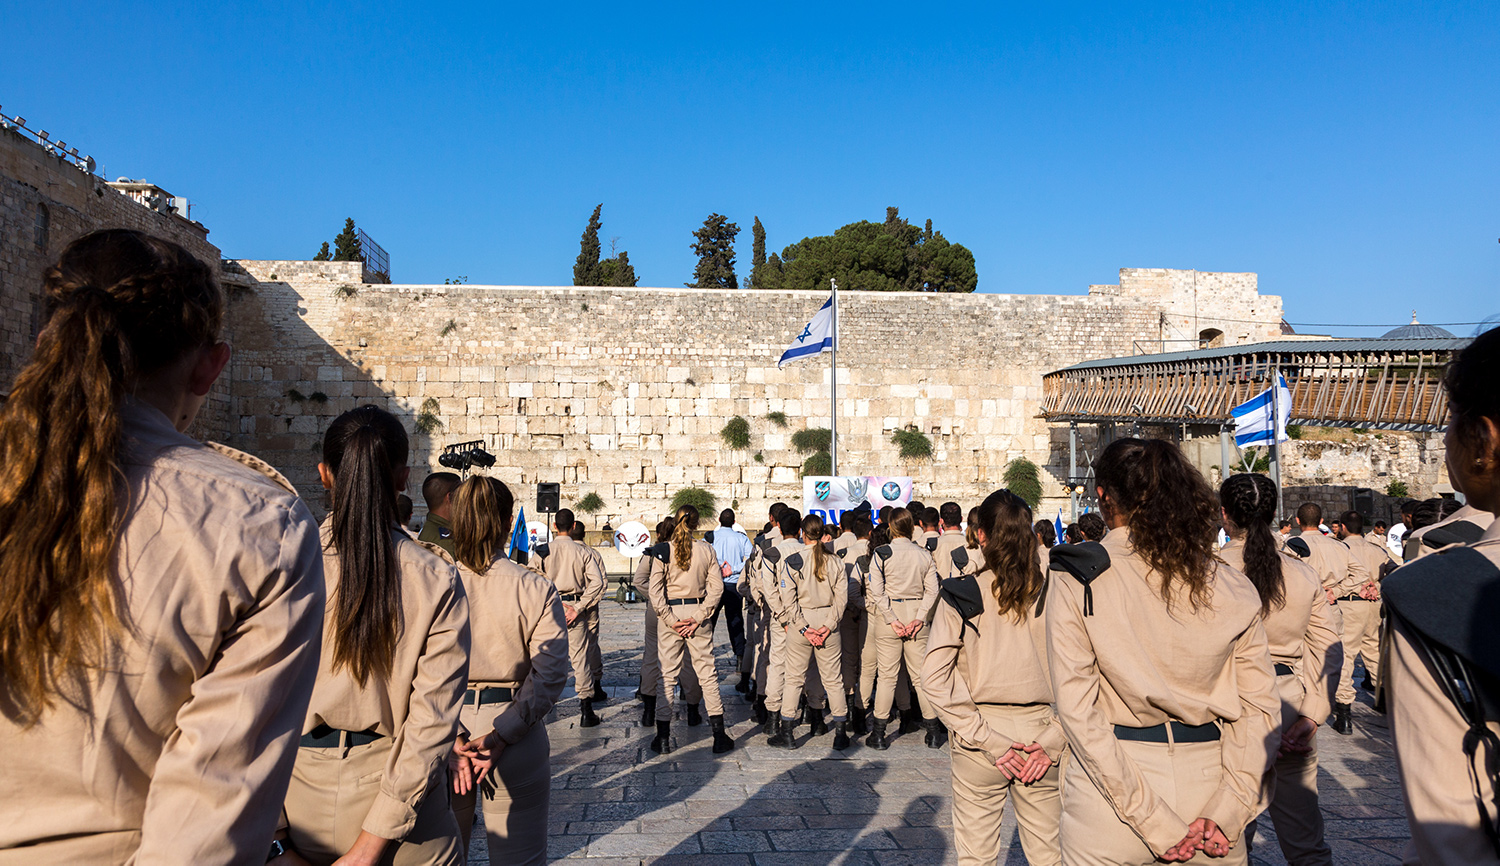 Israel Defense Force cadets being sworn in at the Western Wall. Dominika Zarzycka/NurPhoto via Getty Images.